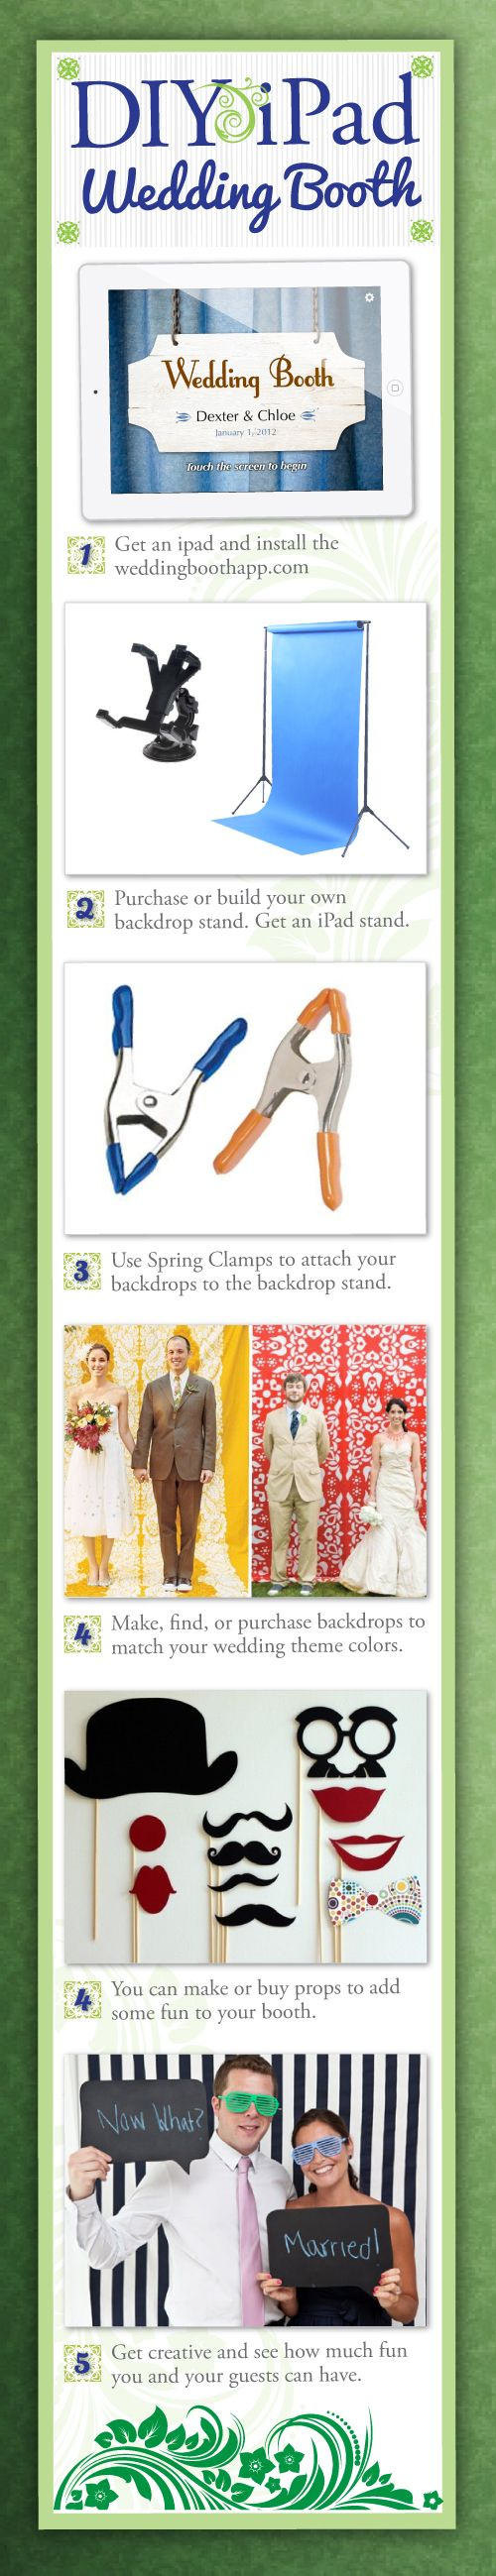 DIY wedding photo booth! You would definitely need lights for indoor ...